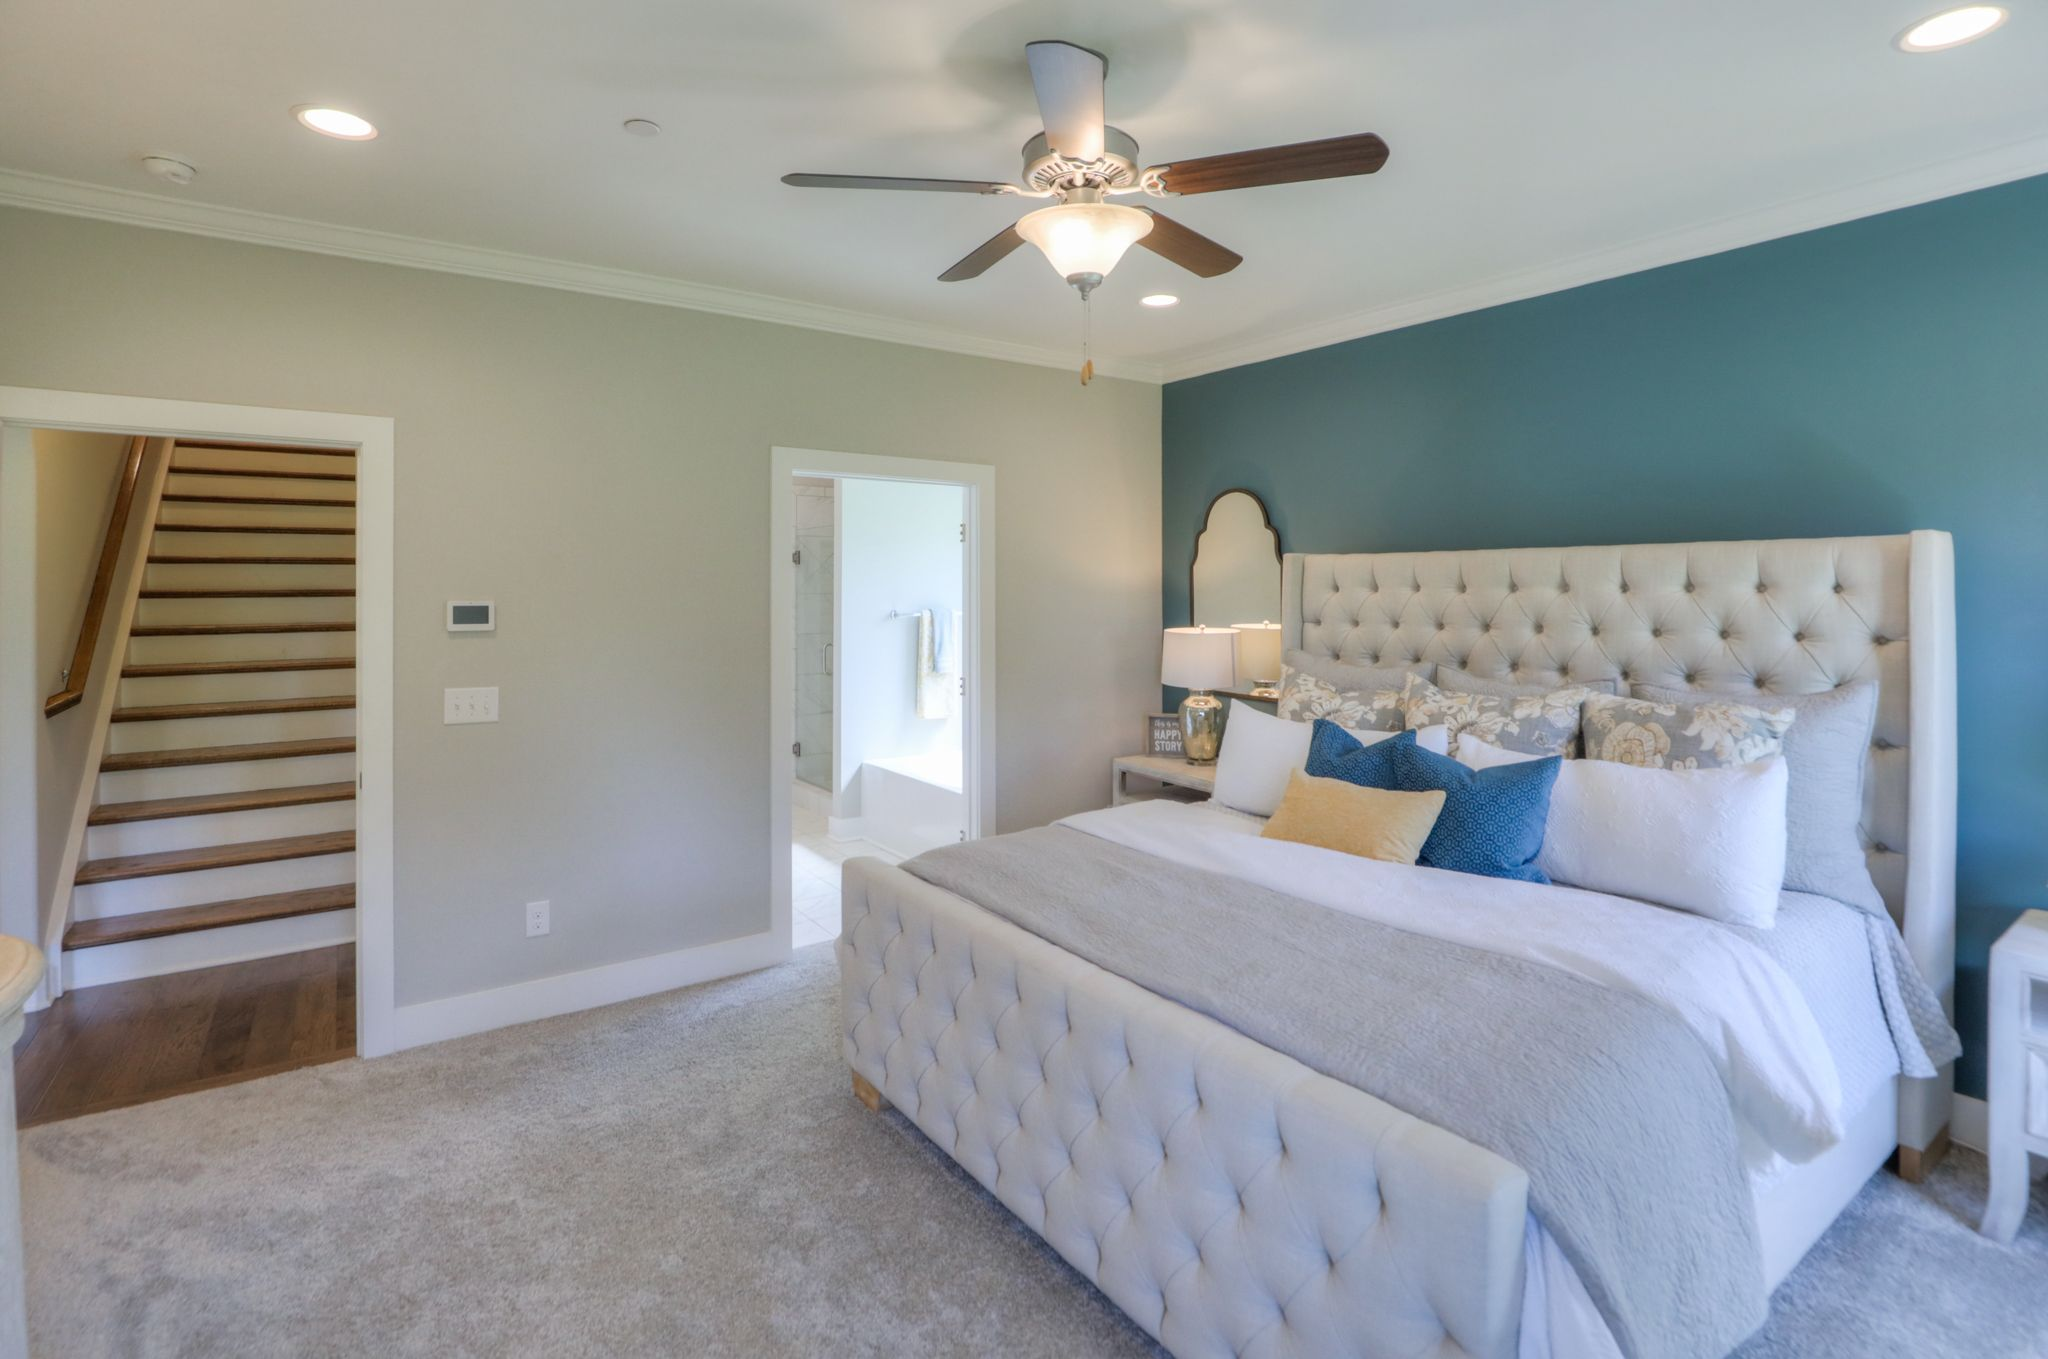 Bedroom featured in The Lexington By Goodall Homes in Chattanooga, TN